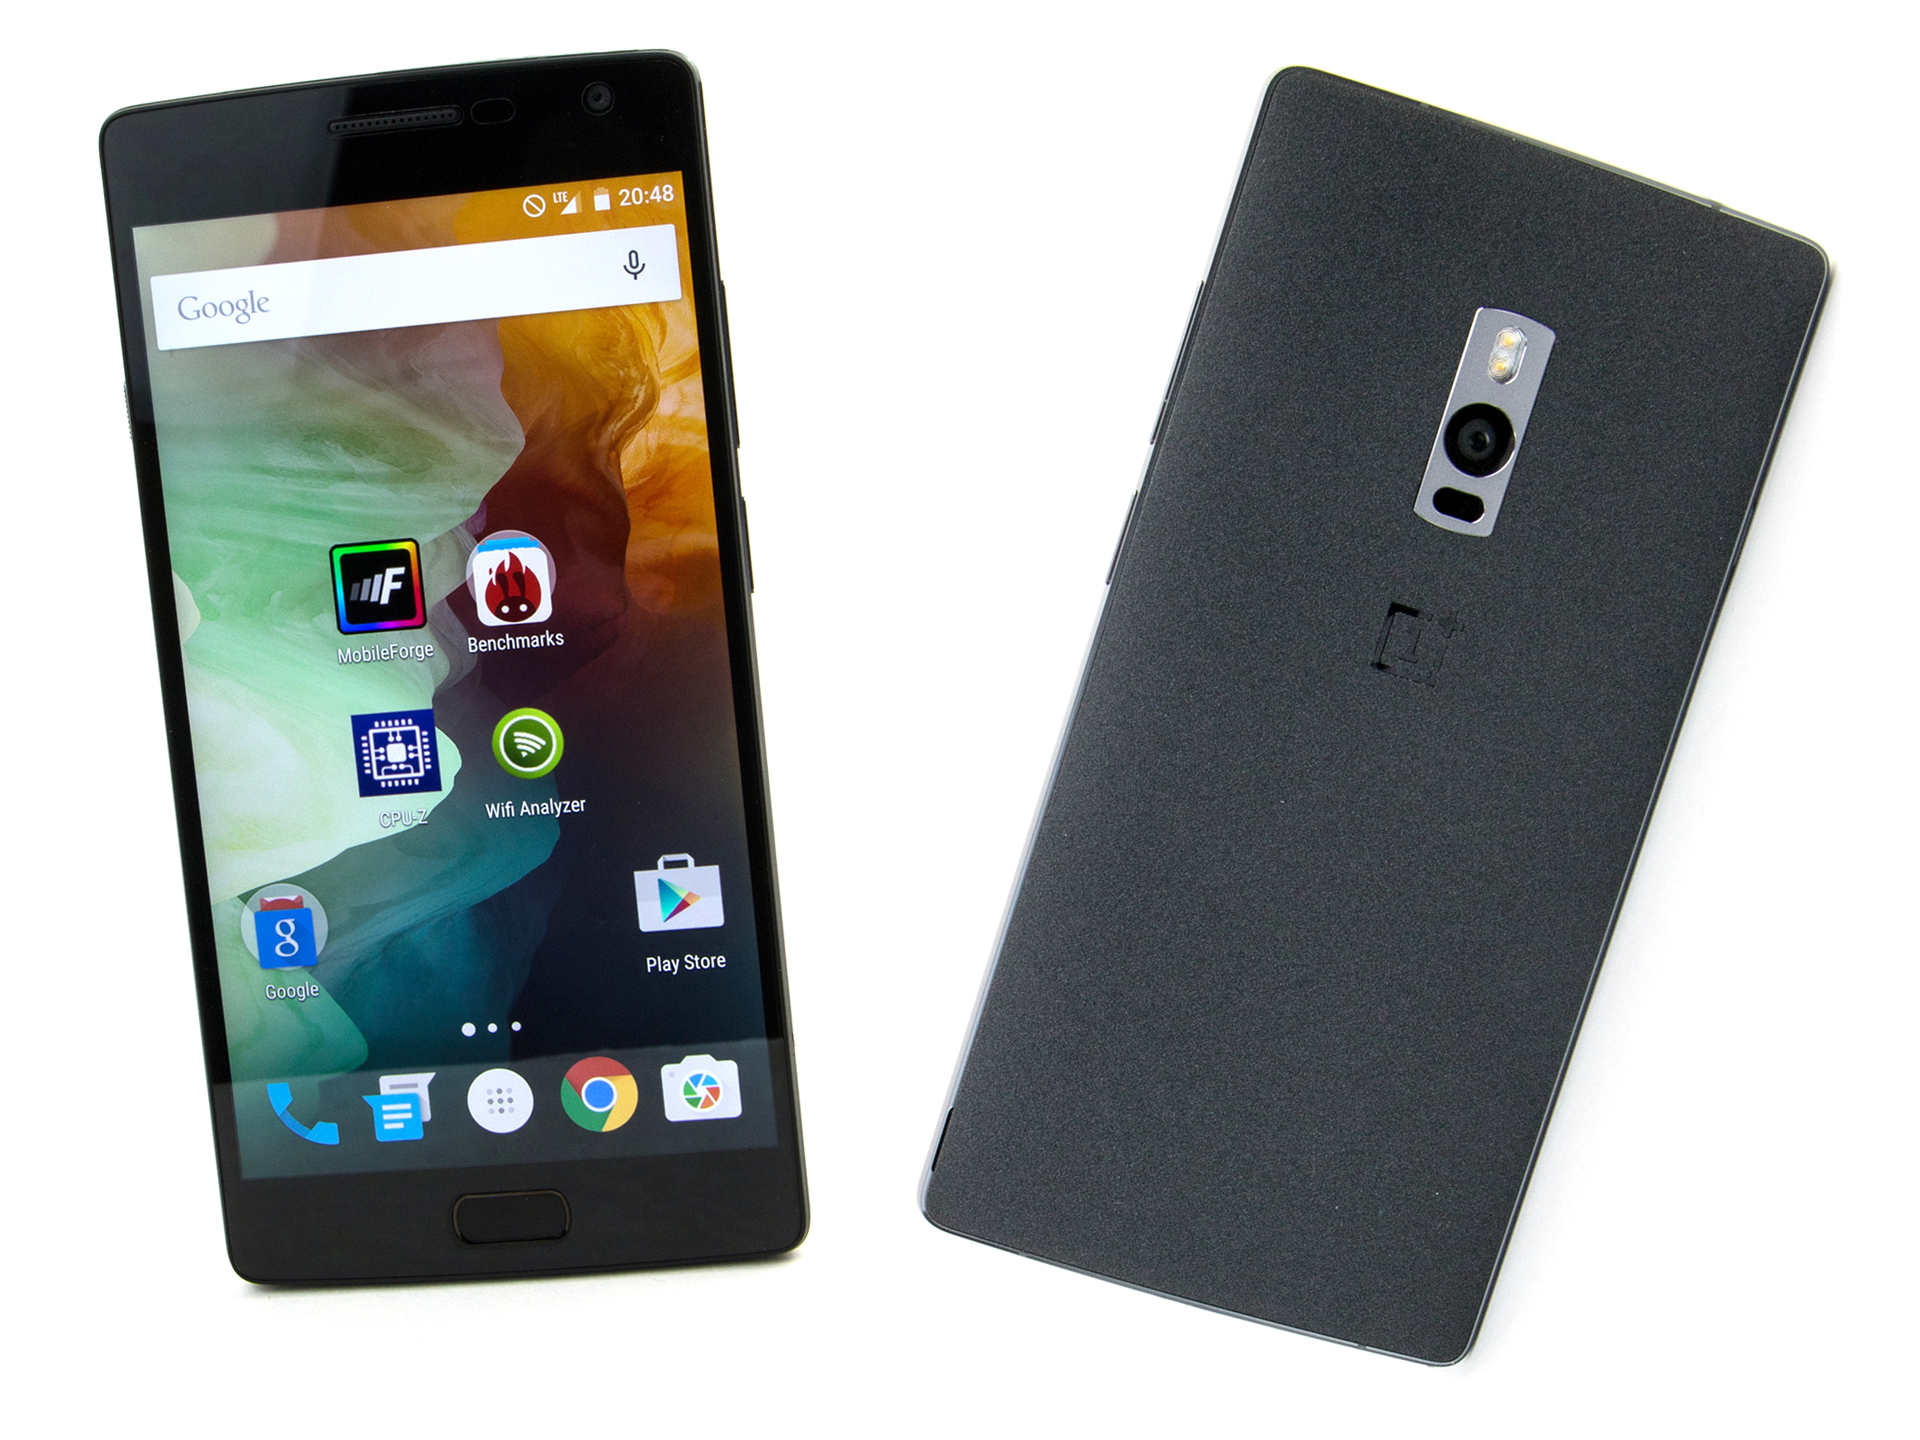 OnePlus 2 Smartphone Review - NotebookCheck.net Reviews